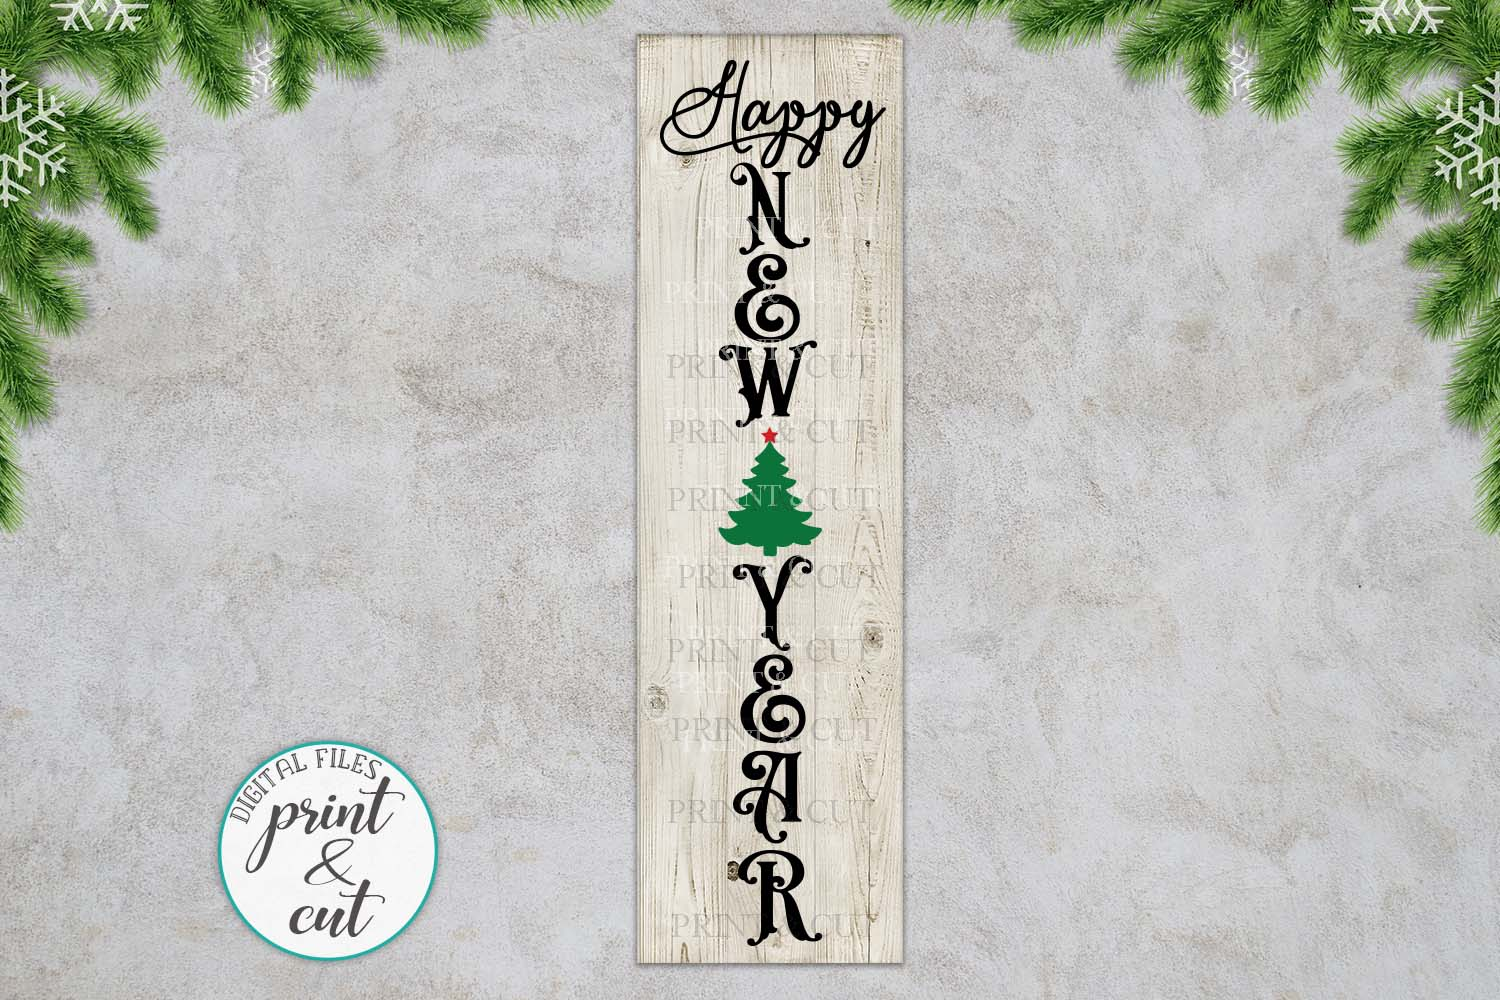 Merry Christmas Happy New Year Believe bundle vertical sign example image 4